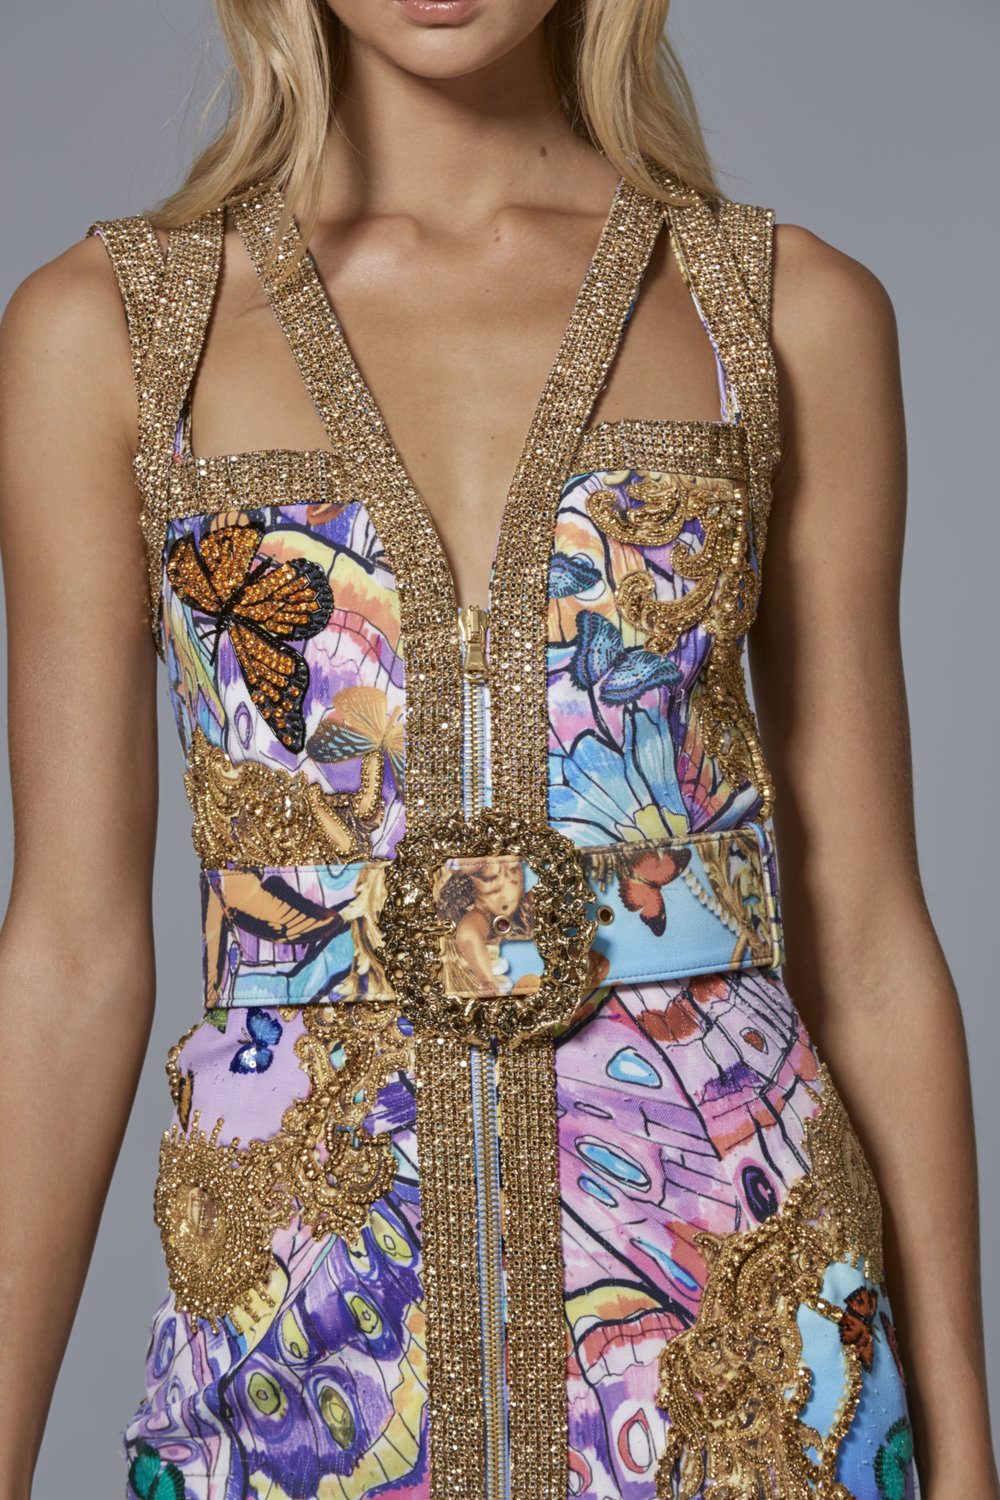 CLAUDIO CINA   LOOK 7:  Neoprene Mini Dress with Embroidered Psychedelic Butterfly Print & Matching Belt with Baroque Metal Buckle